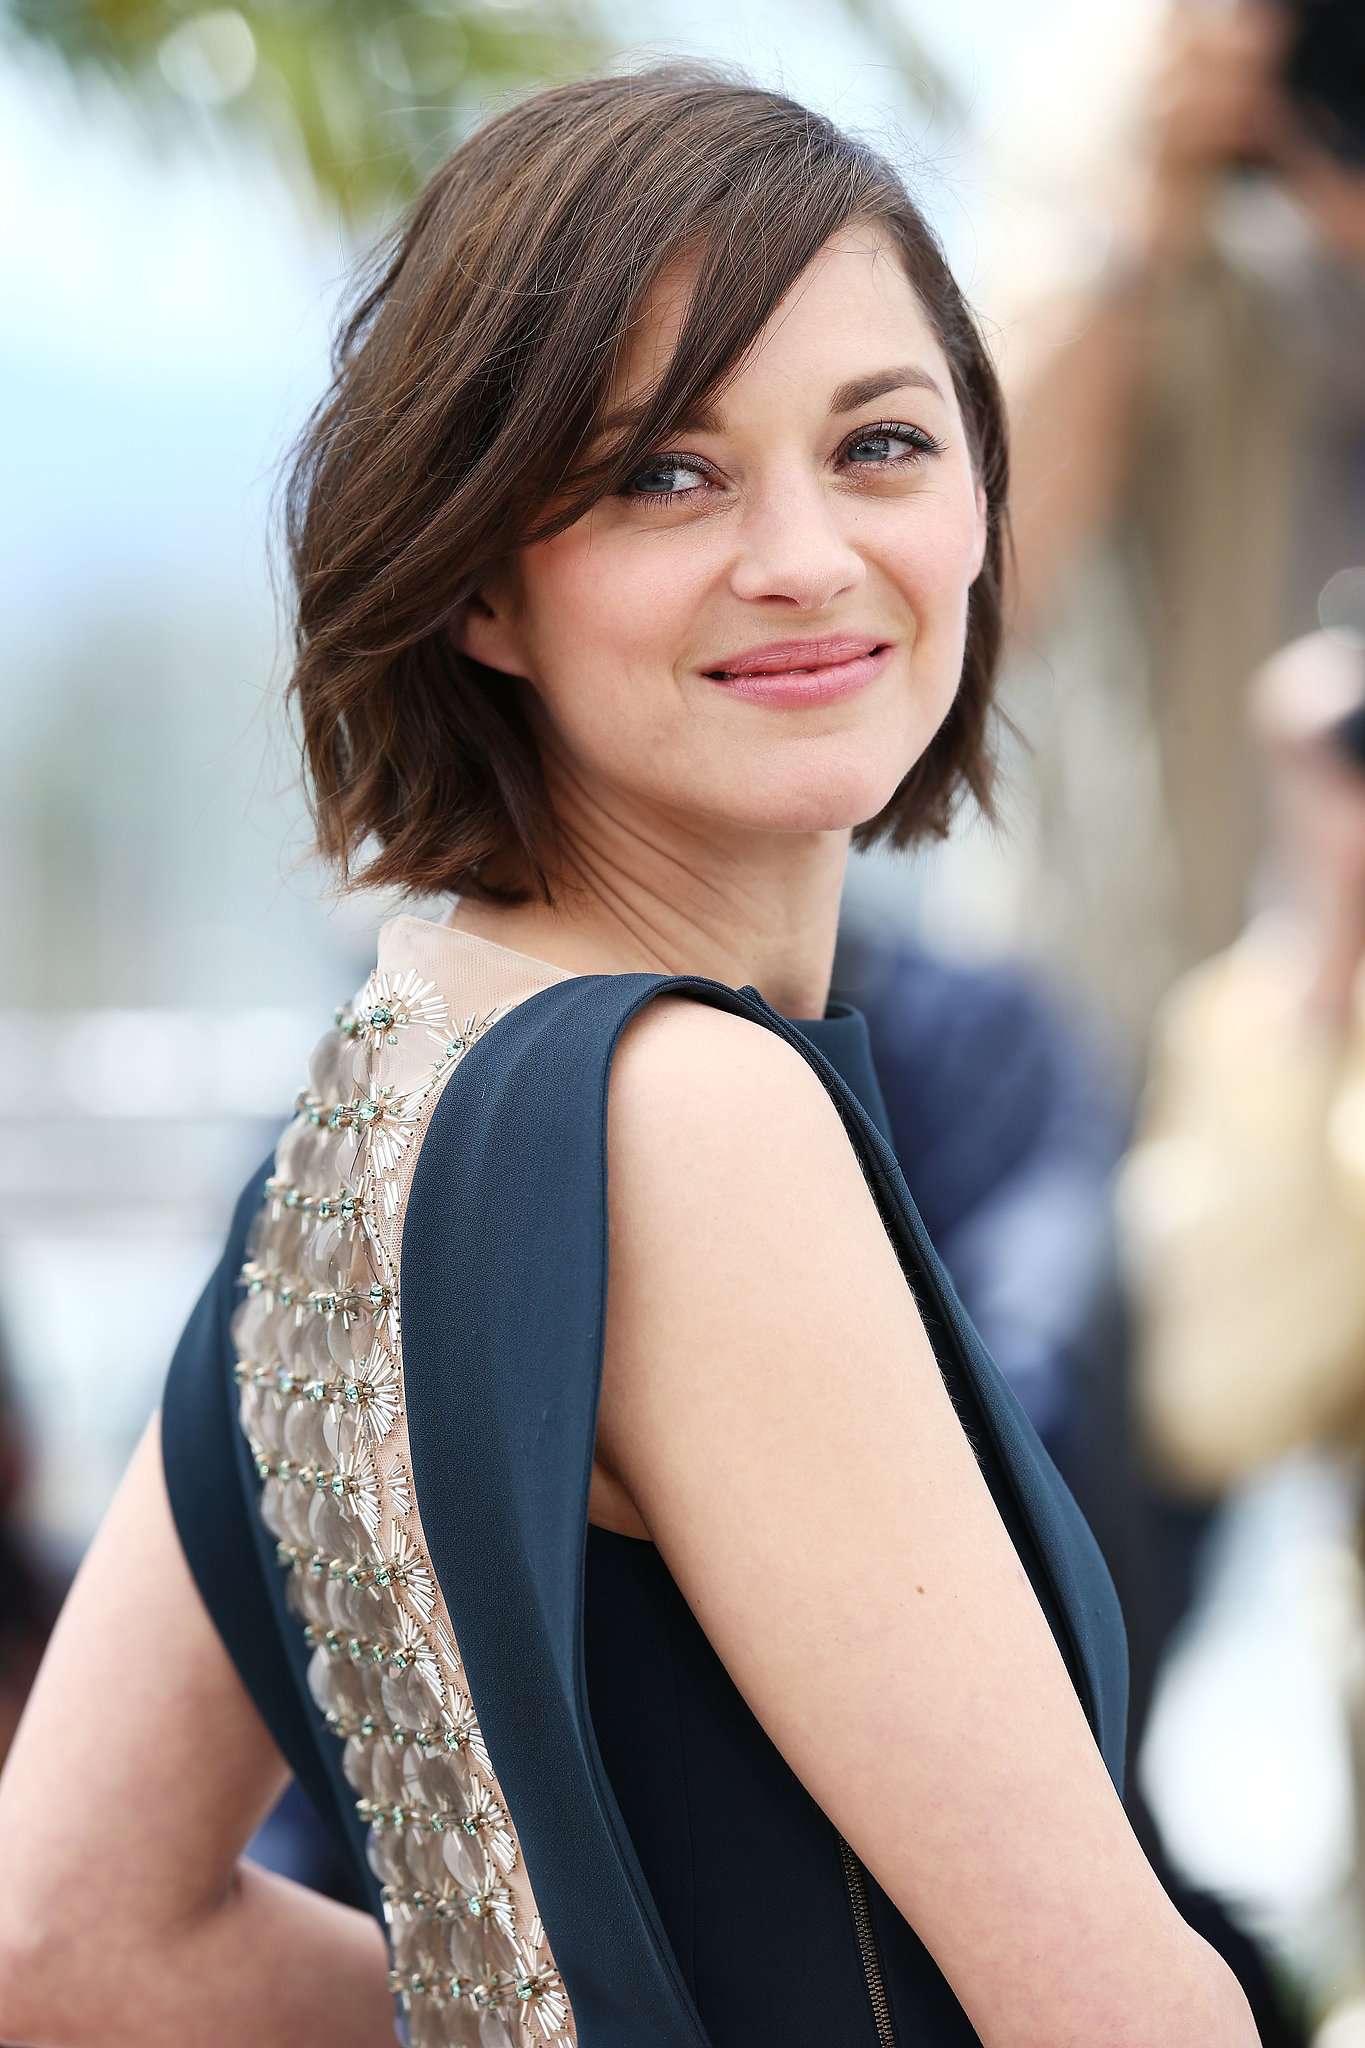 Styling her brown crop in loose waves, Marion Cotillard opted for a neutral makeup look at the photocall for Blood Ties.